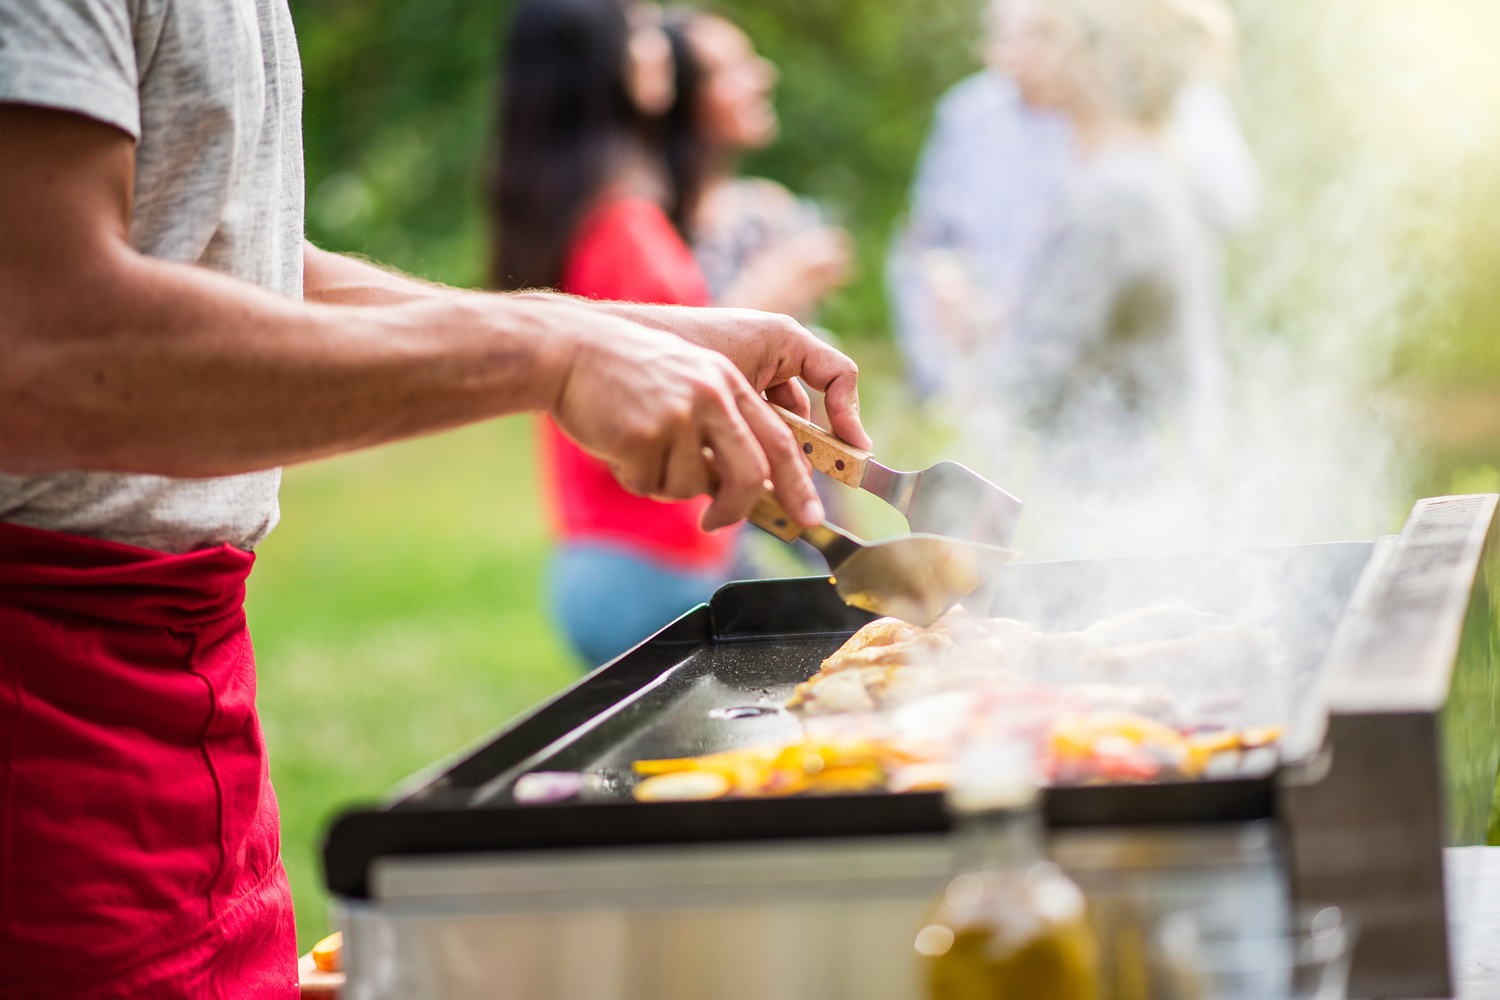 BBQ Beginners Must See! Recommend BBQ Options by Nutritionist.